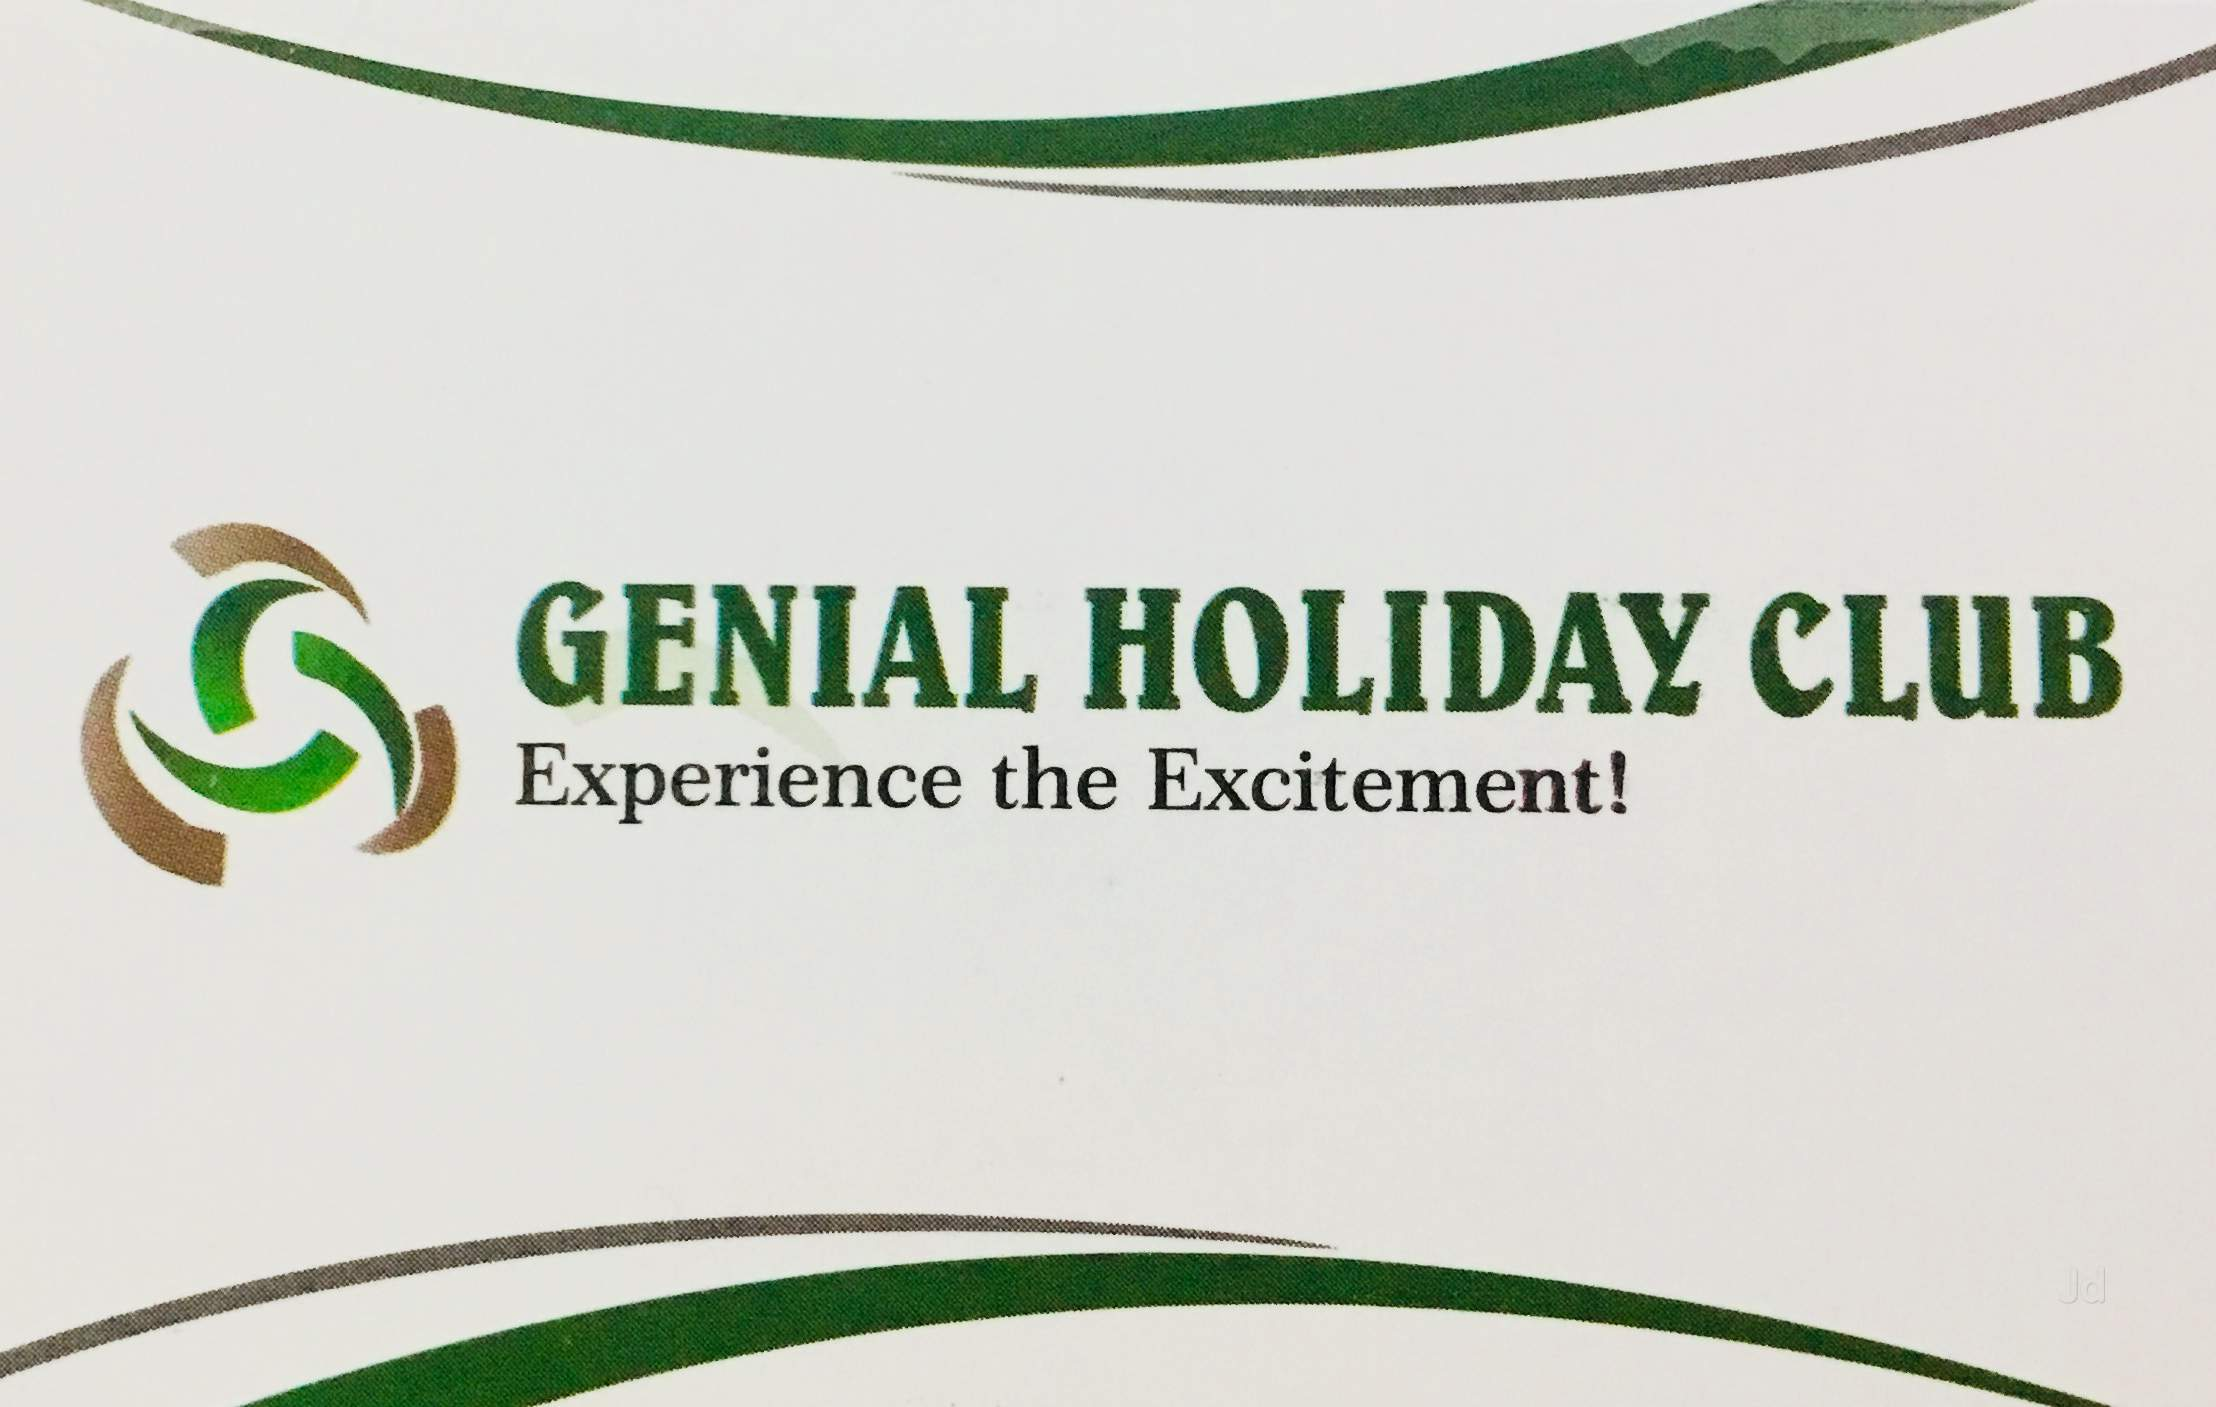 Genial Holiday Club - Chandigarh Image